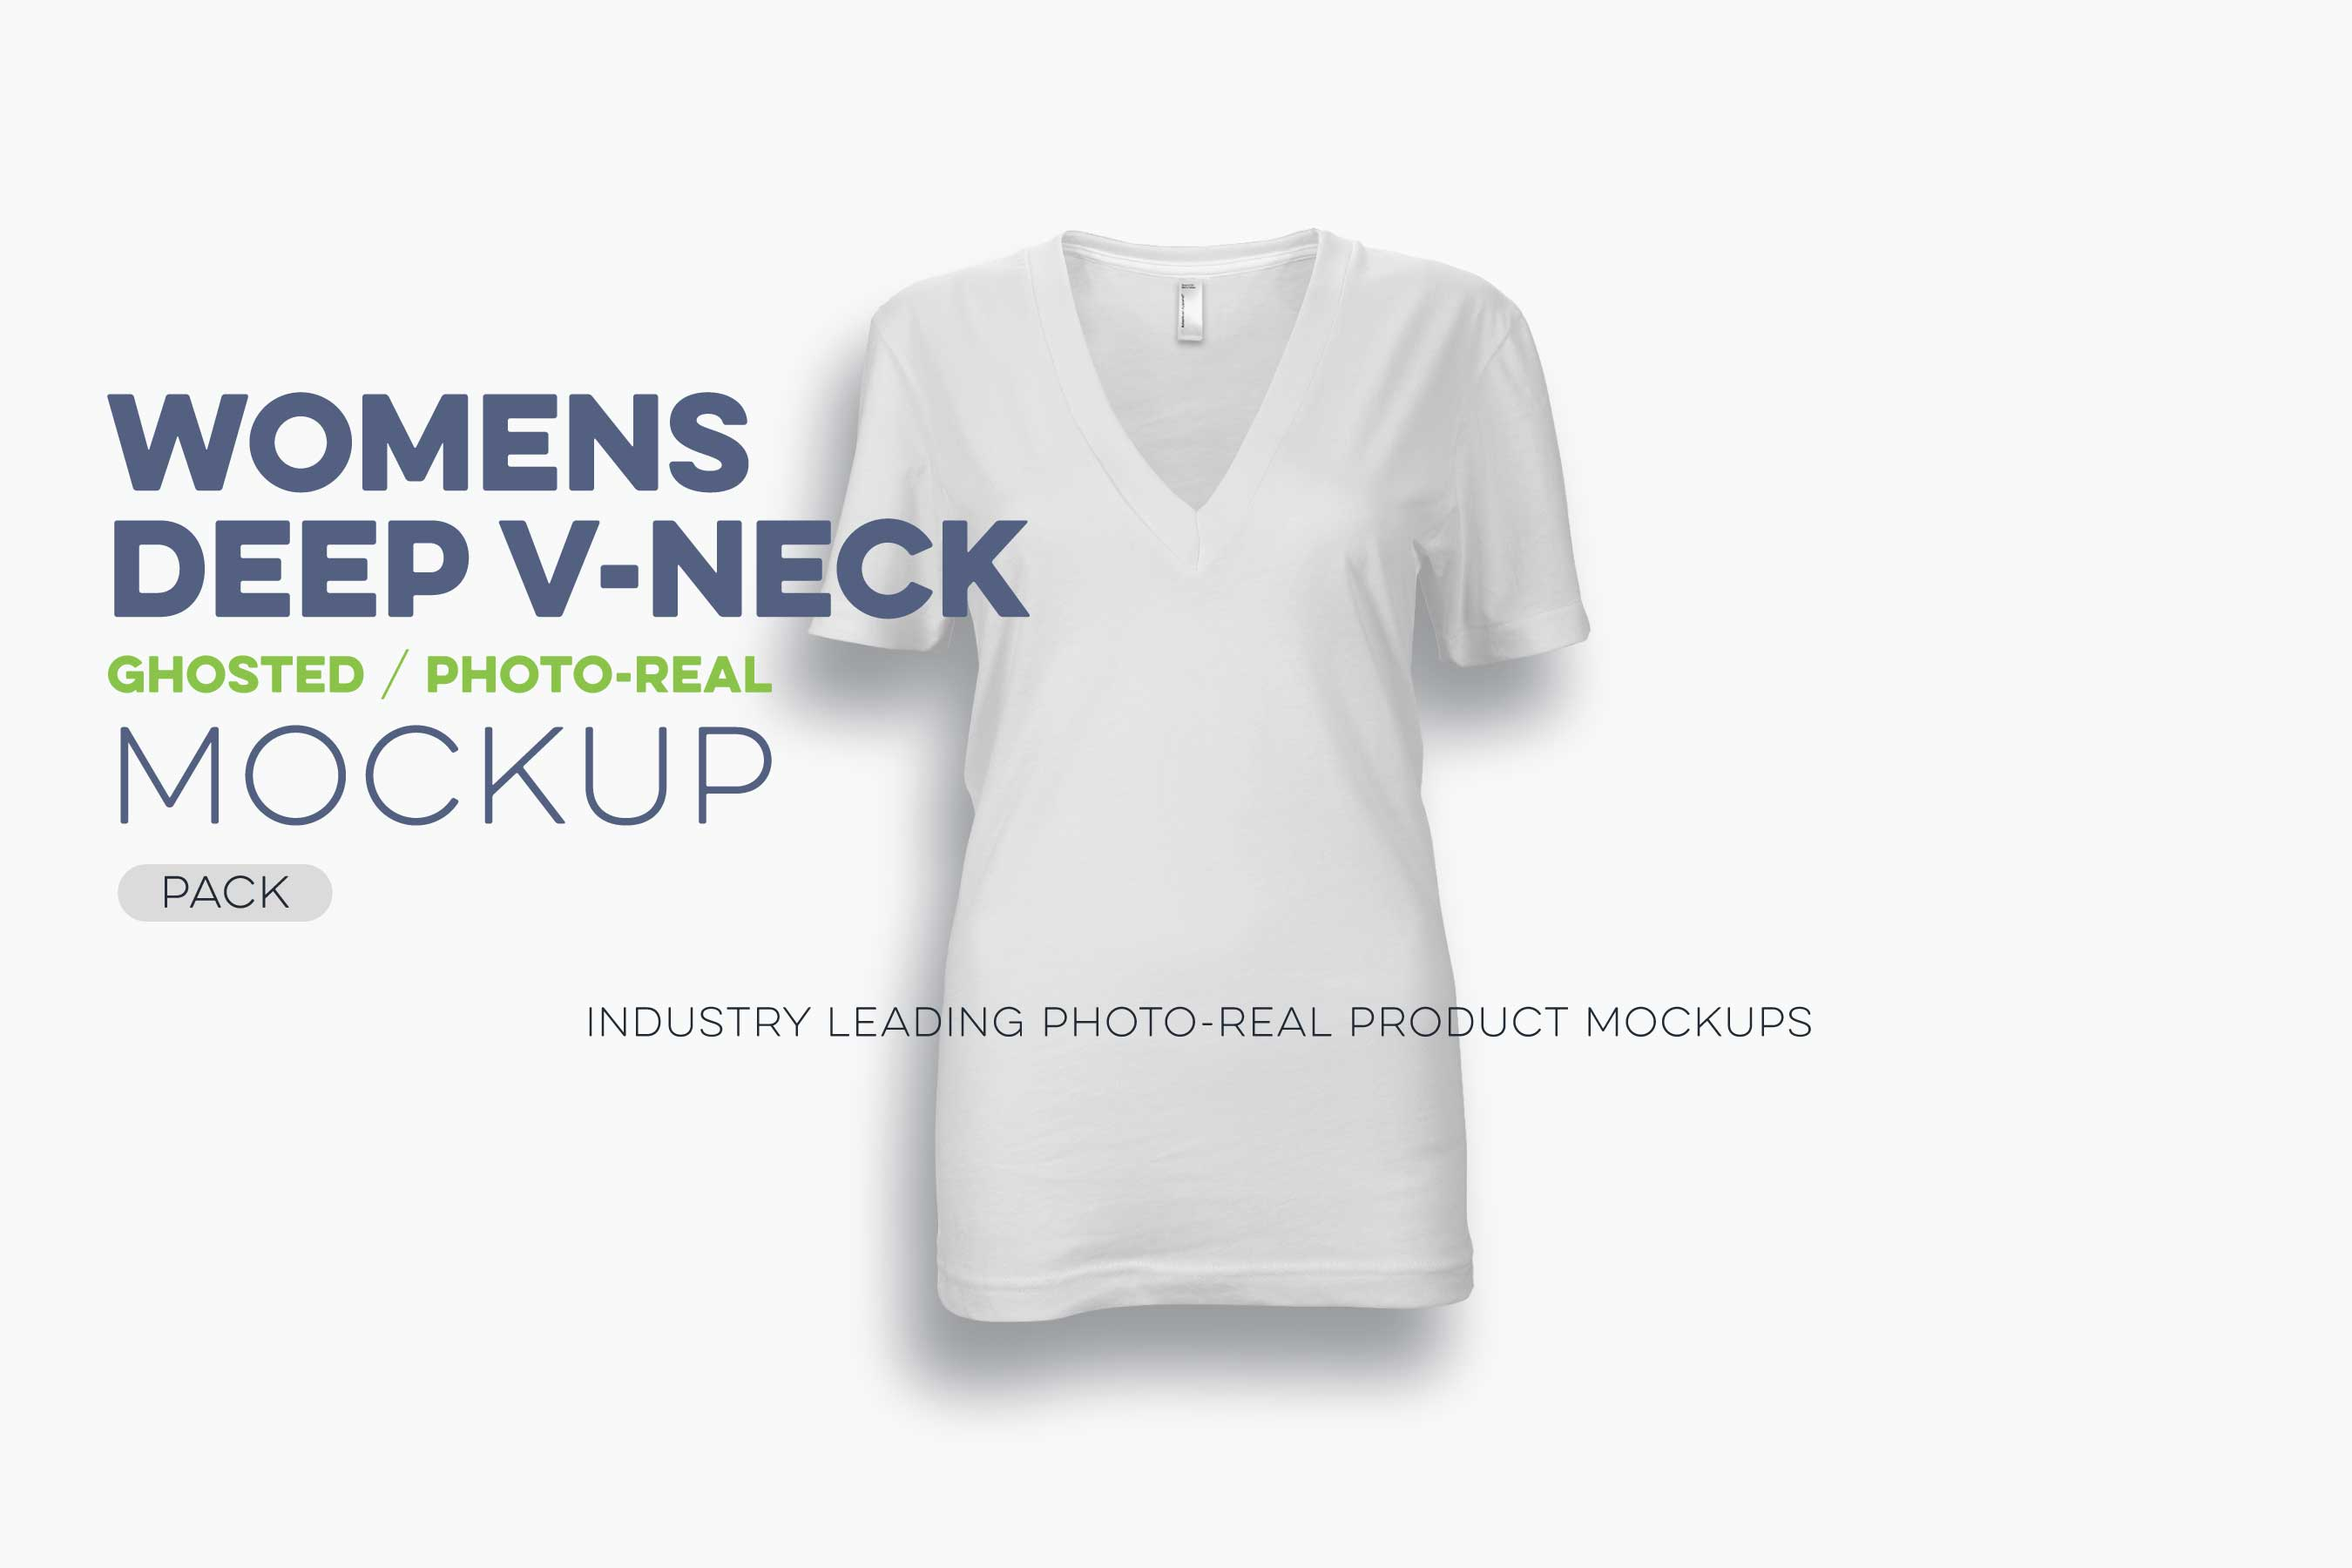 womens ghosted deep v-neck t-shirt mockup template N